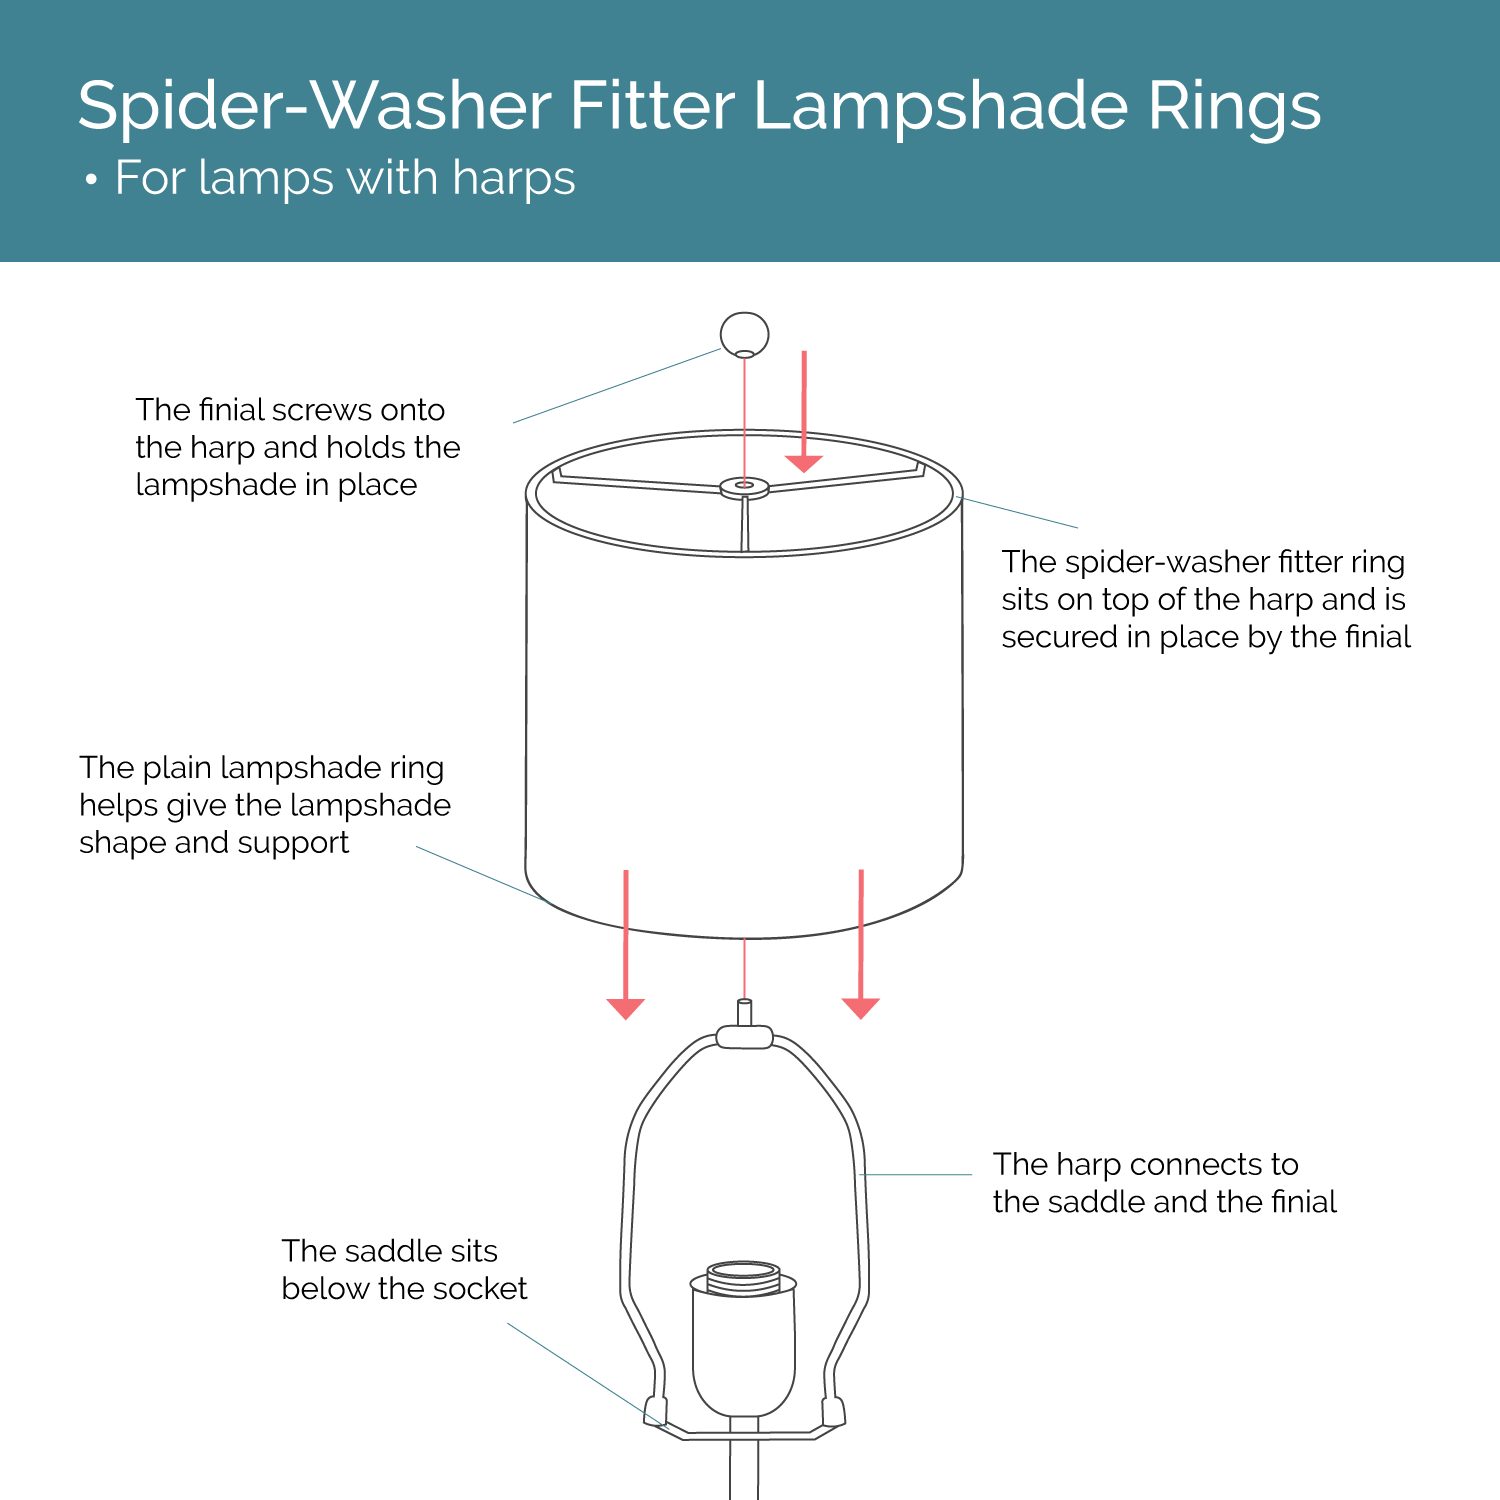 Spiderwasher fitter lampshade ring set i like that lamp us style spiderwasher fitter lampshade rings for making diy lampshades keyboard keysfo